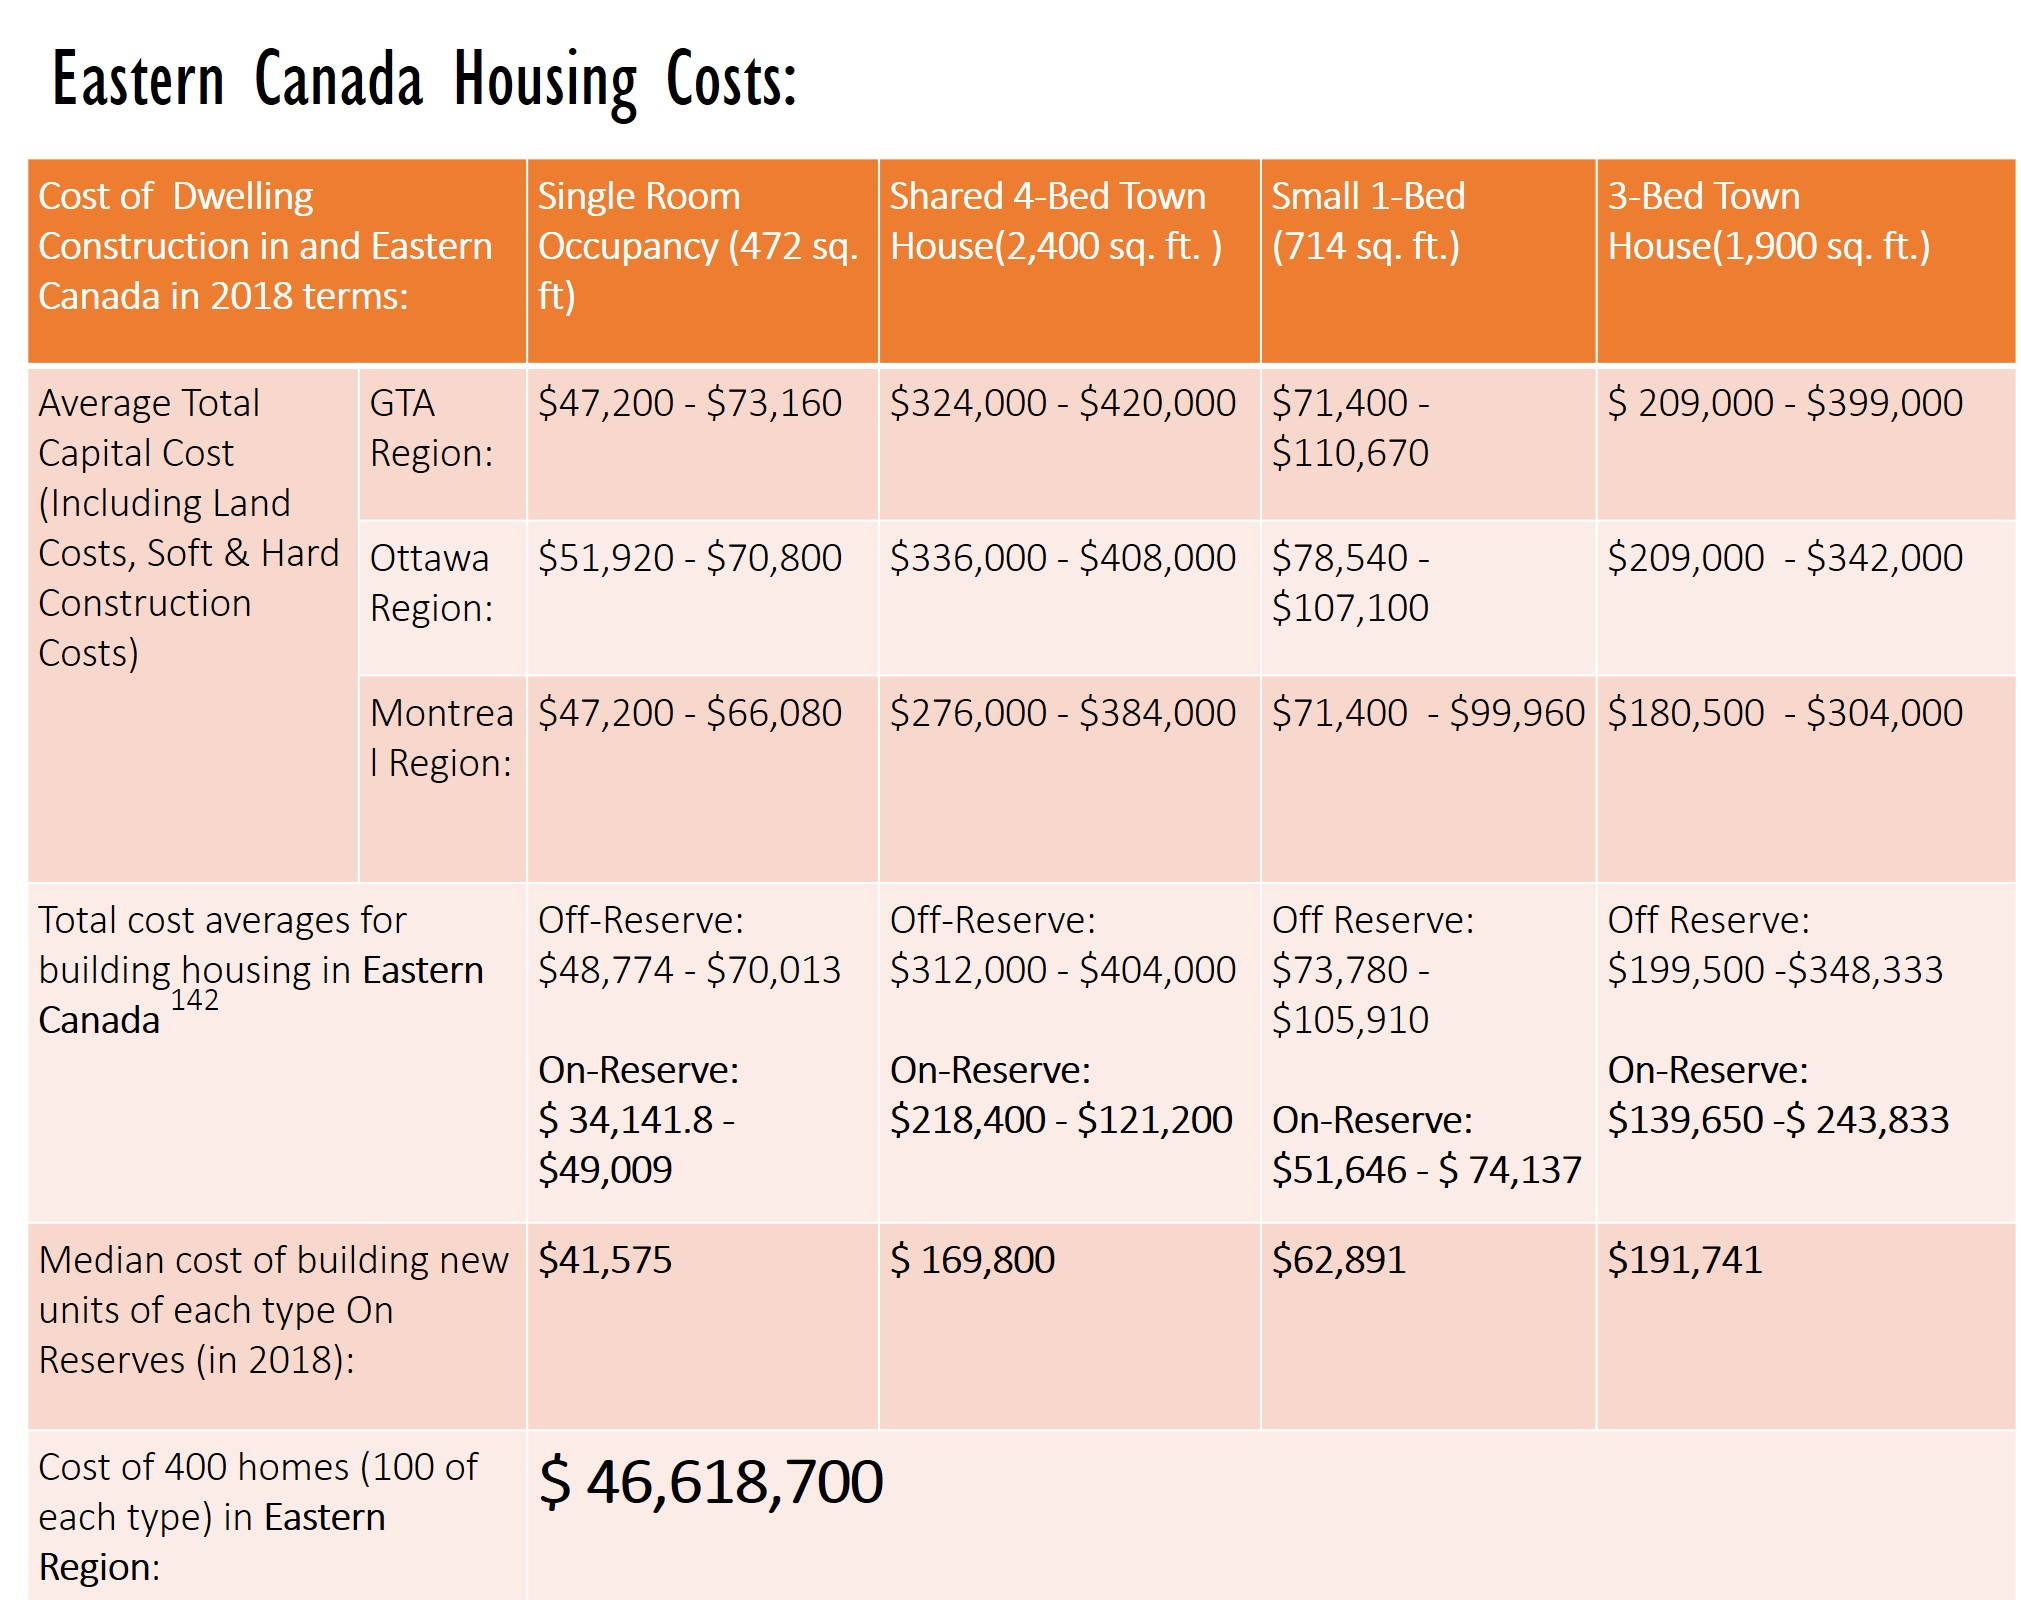 Eastern Canada Housing Costs: Cost of 400 homes (100 of each type) in Eastern Region $46,618,700